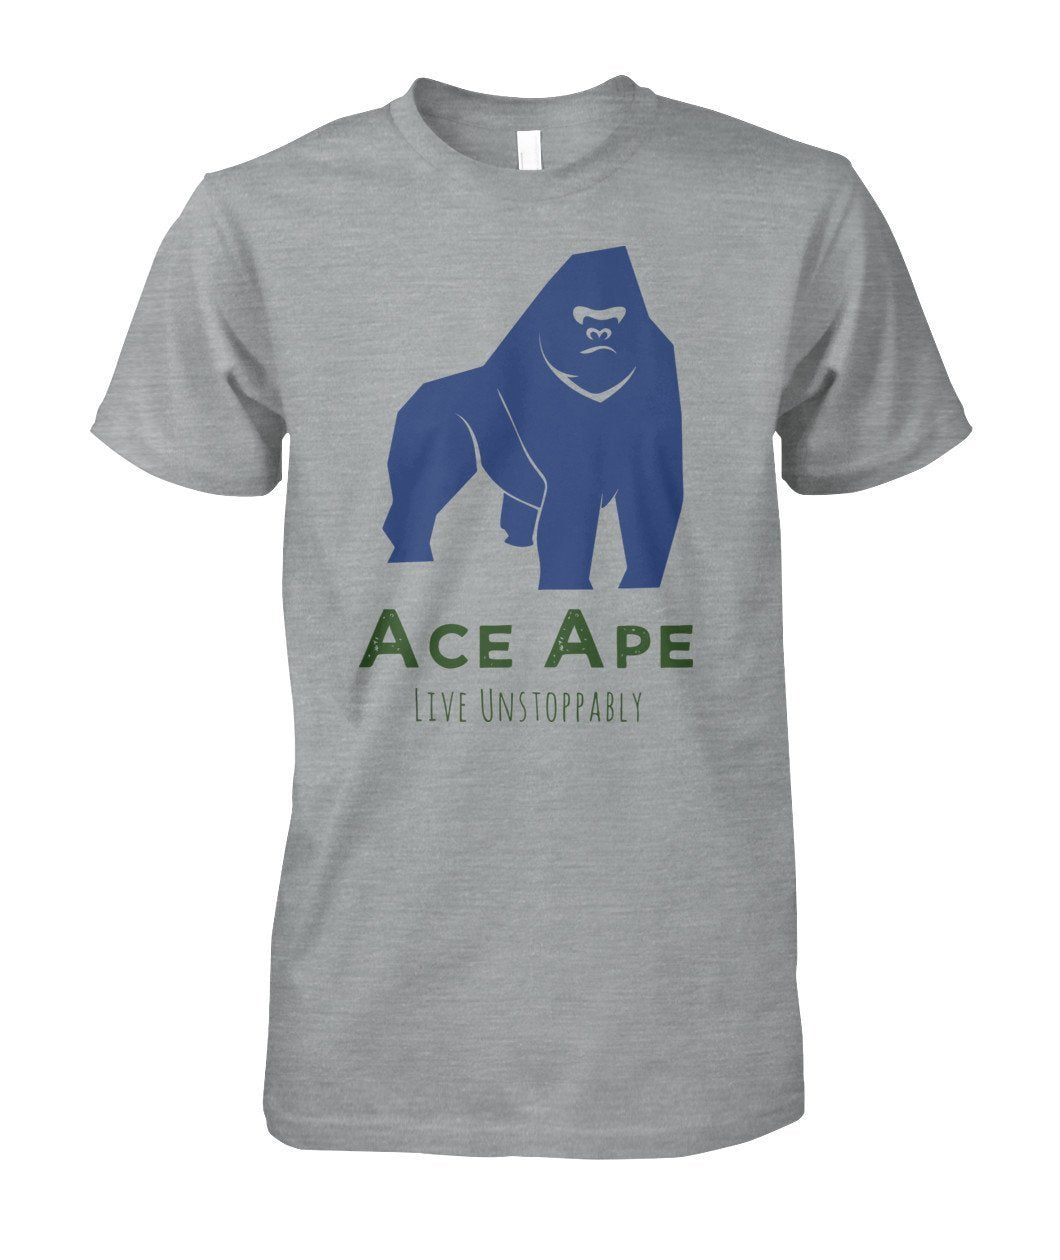 Short Sleeves Sport Grey / S Stressed Out Unisex Cotton Tee AceApe CBD Dispensary